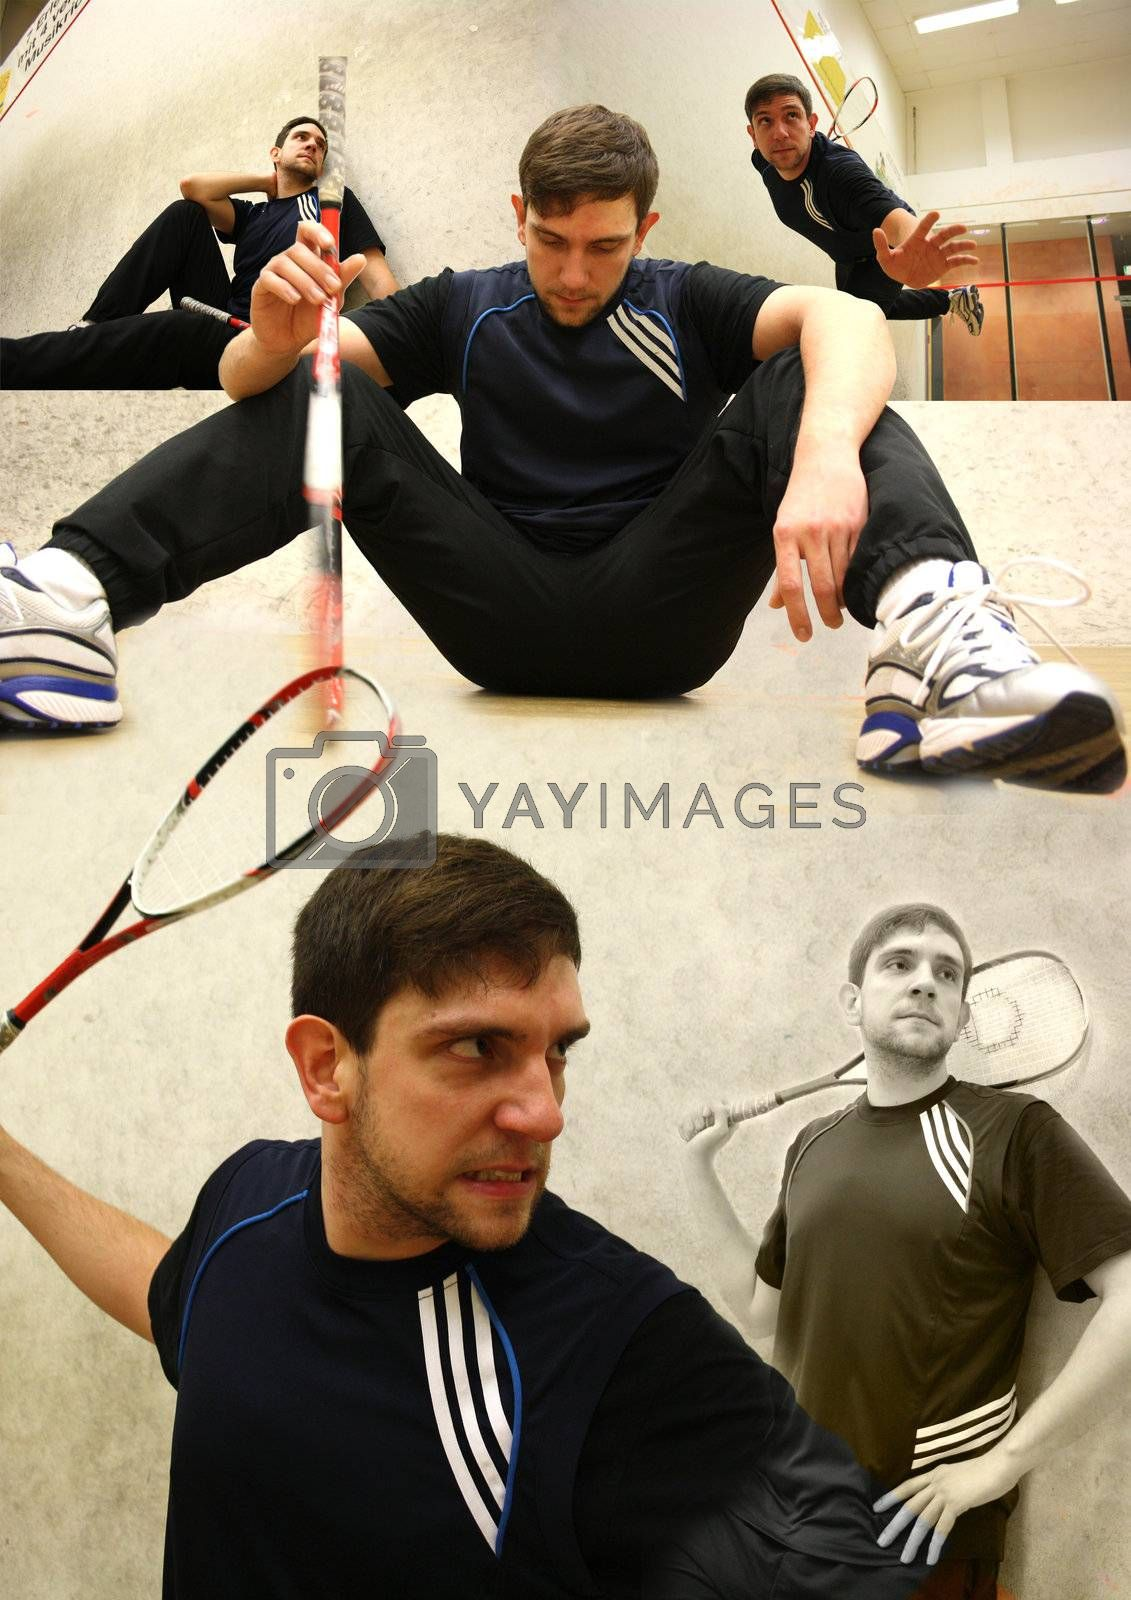 A handsome man playing squash in the hall